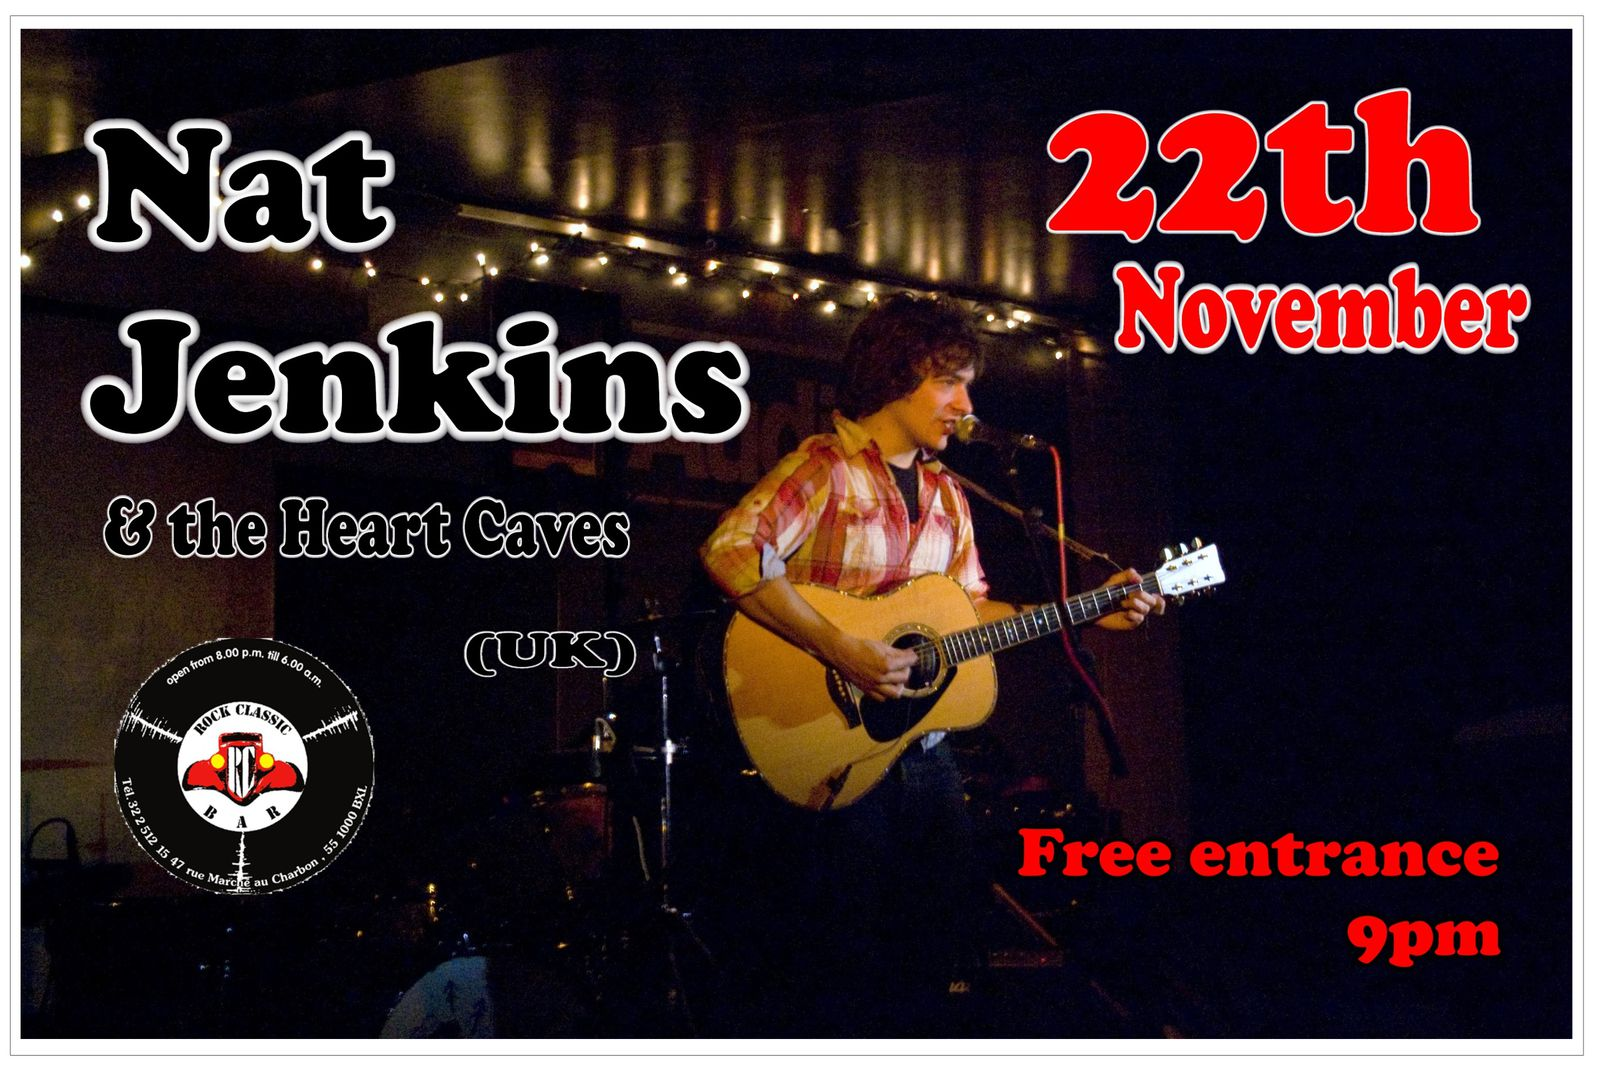 Nath Jenkins & the heart caves (UK) @ Rock Classic - 22/11/2013 - 21h00 - Entrée gratuite !